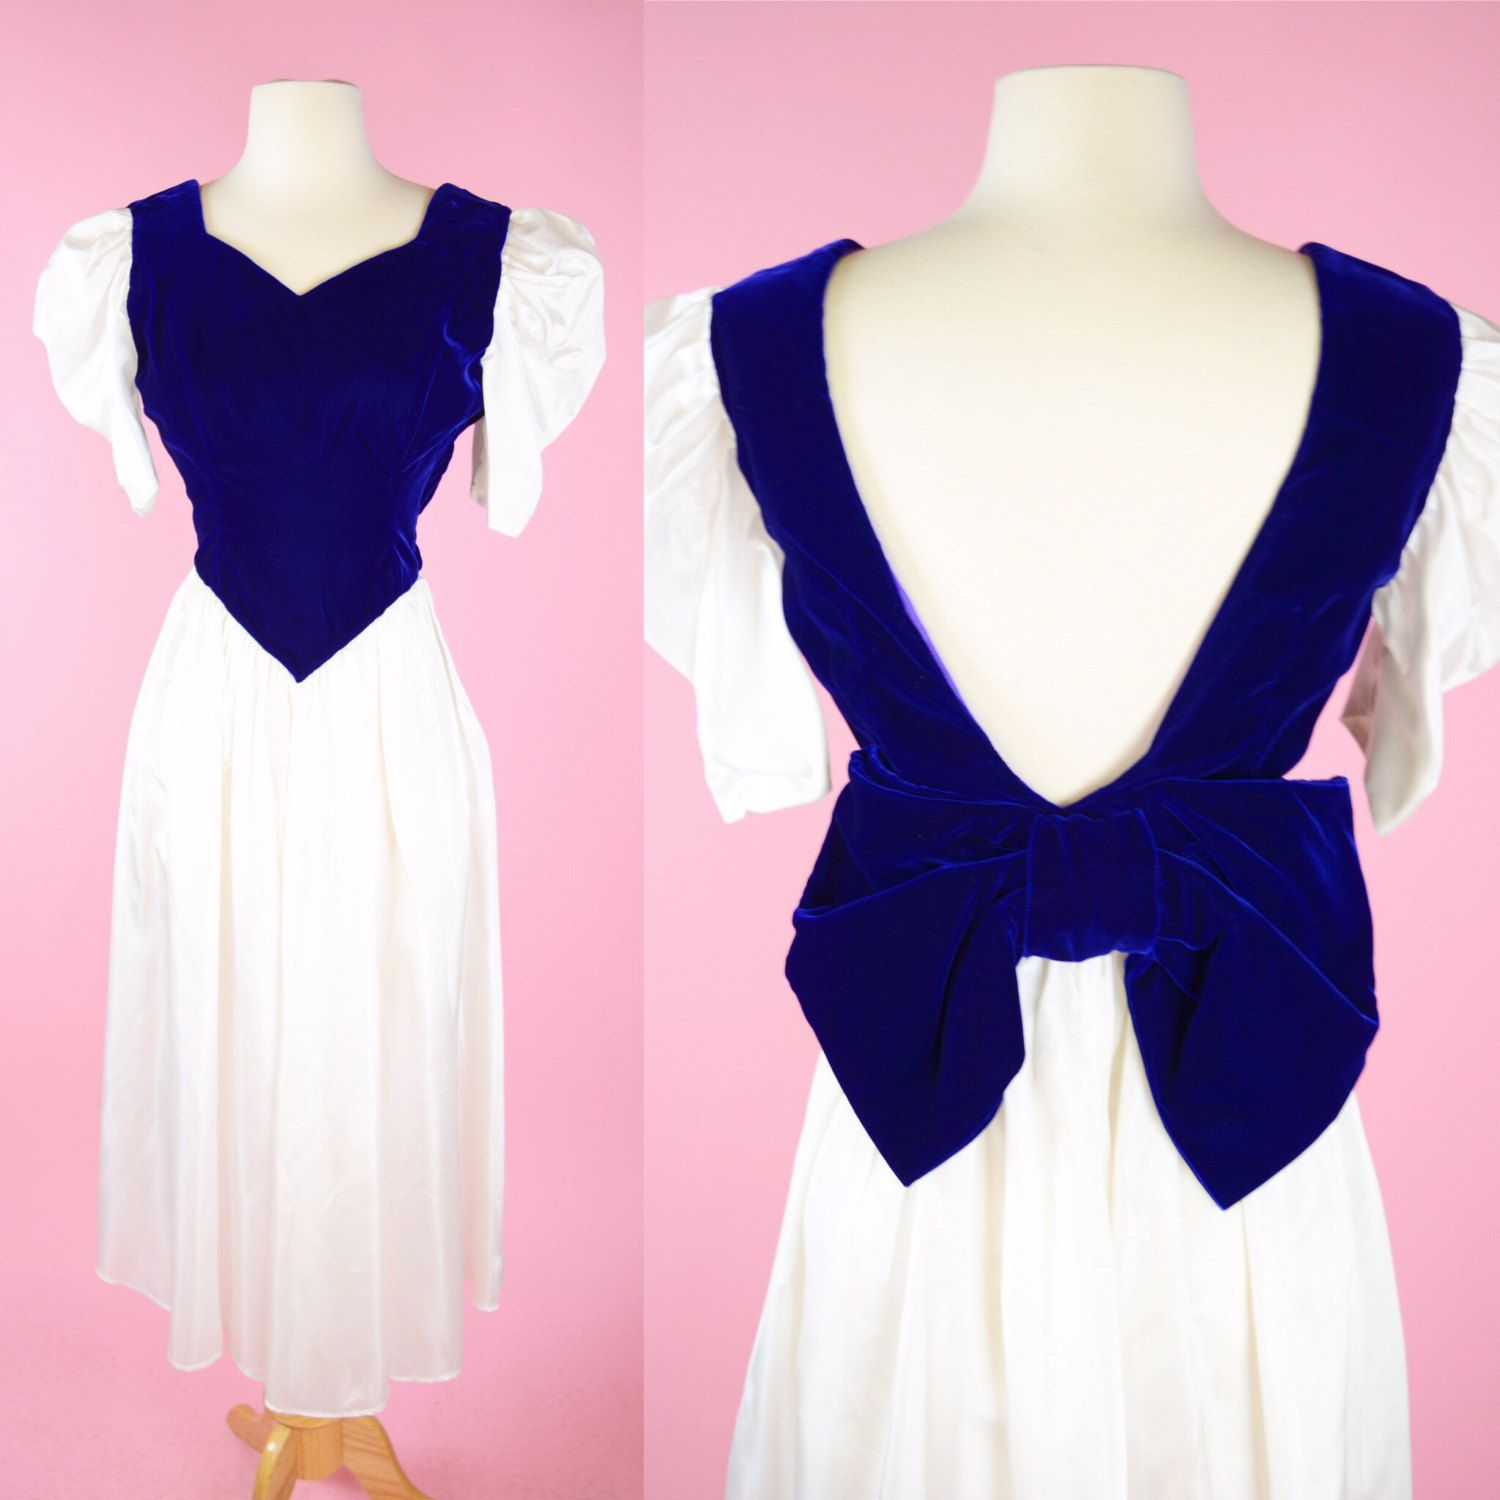 Vintage White & Purple Velvet Prom Dress // 1980s Retro Party Dress Womans Size Small by RIPandROSE on Etsy